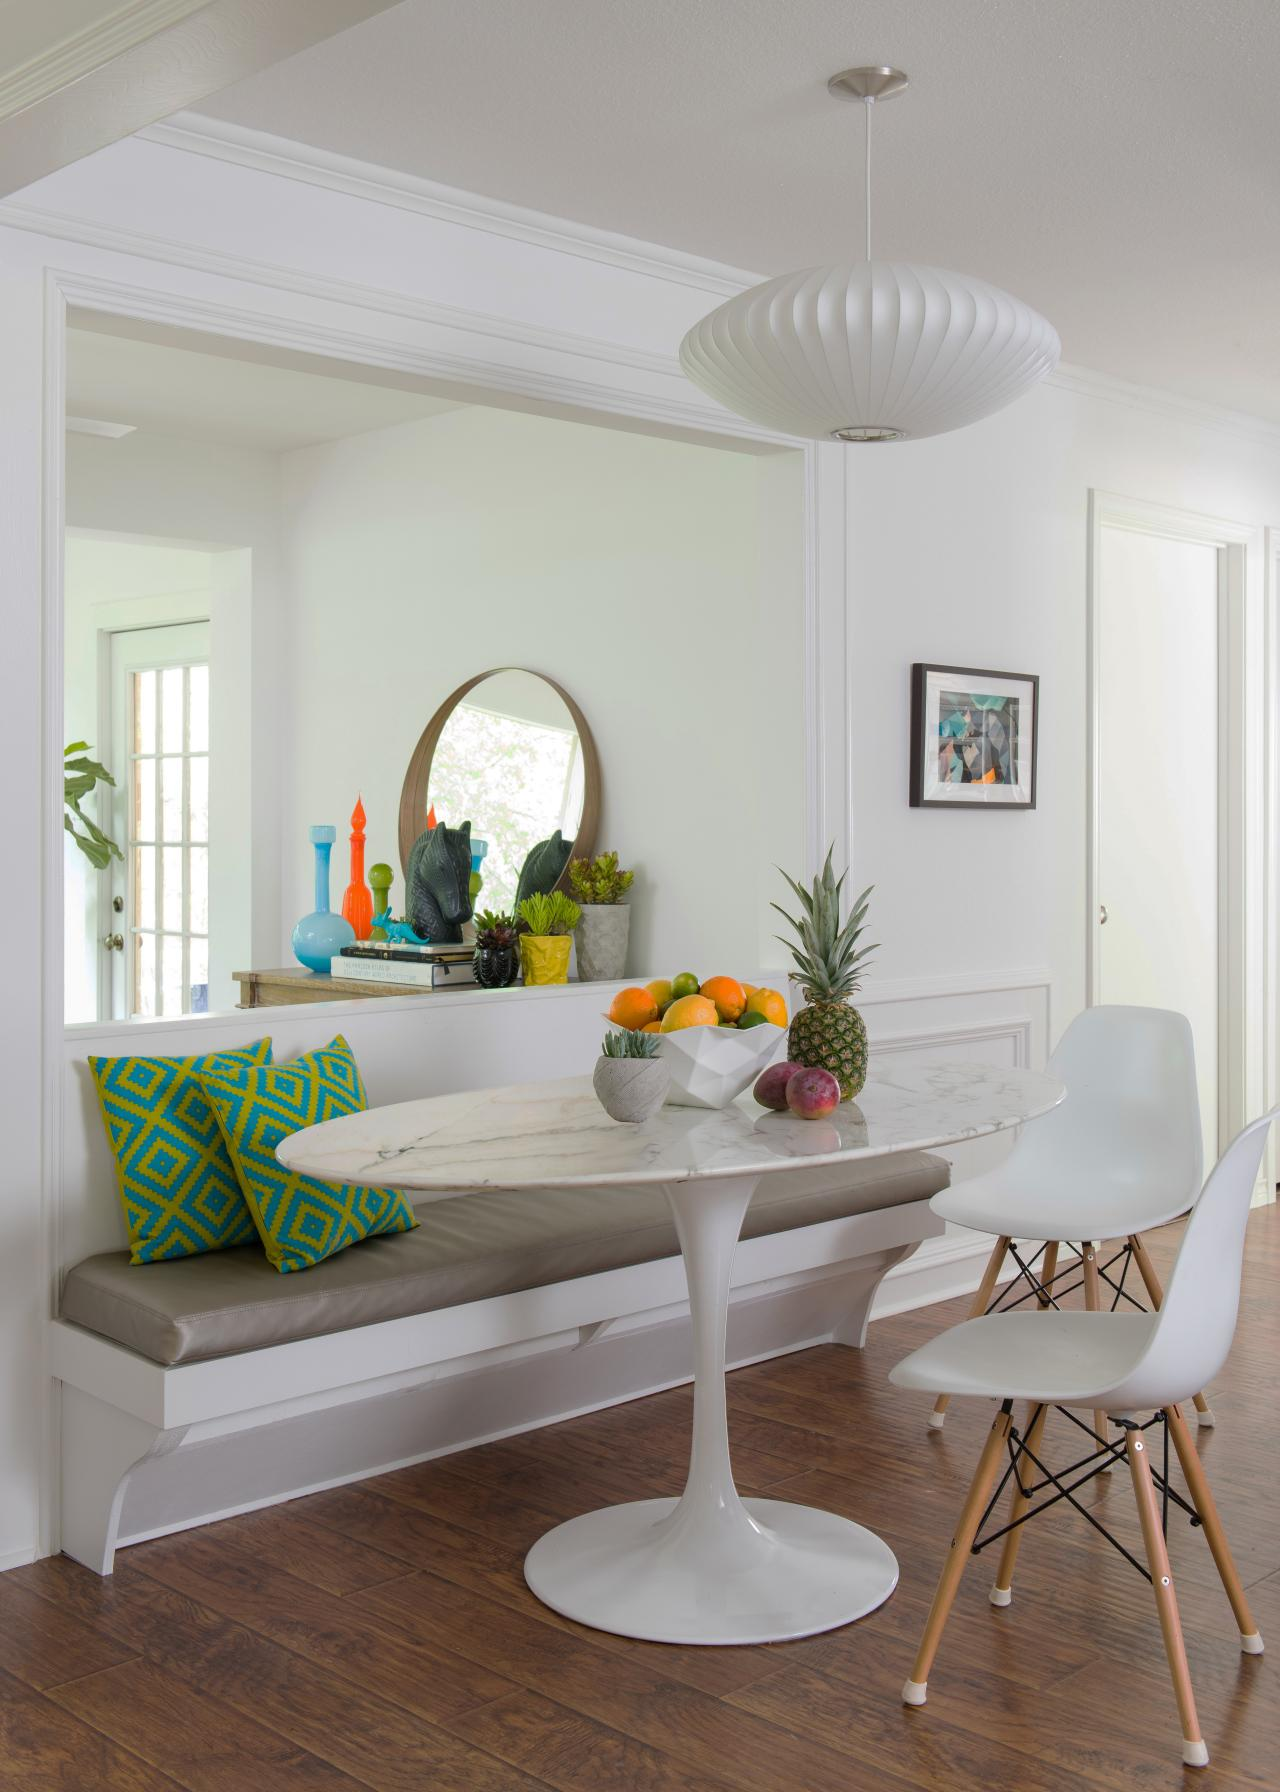 12 Ways To Make A Banquette Work In Your Kitchen Hgtv S Decorating Design Blog Hgtv